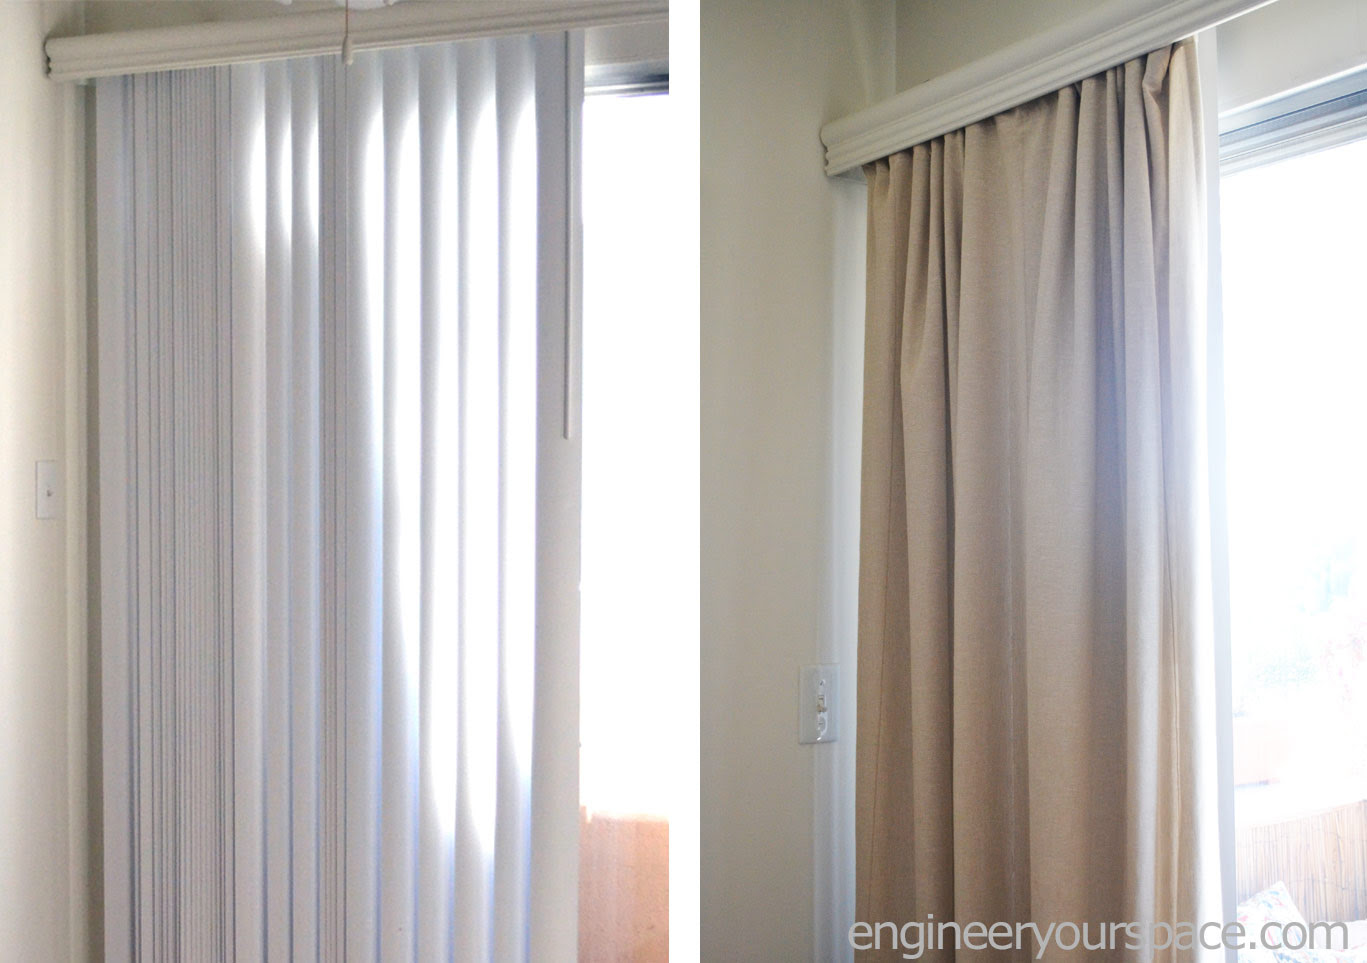 How To Conceal Vertical Blinds With Curtains Smart Diy Solutions